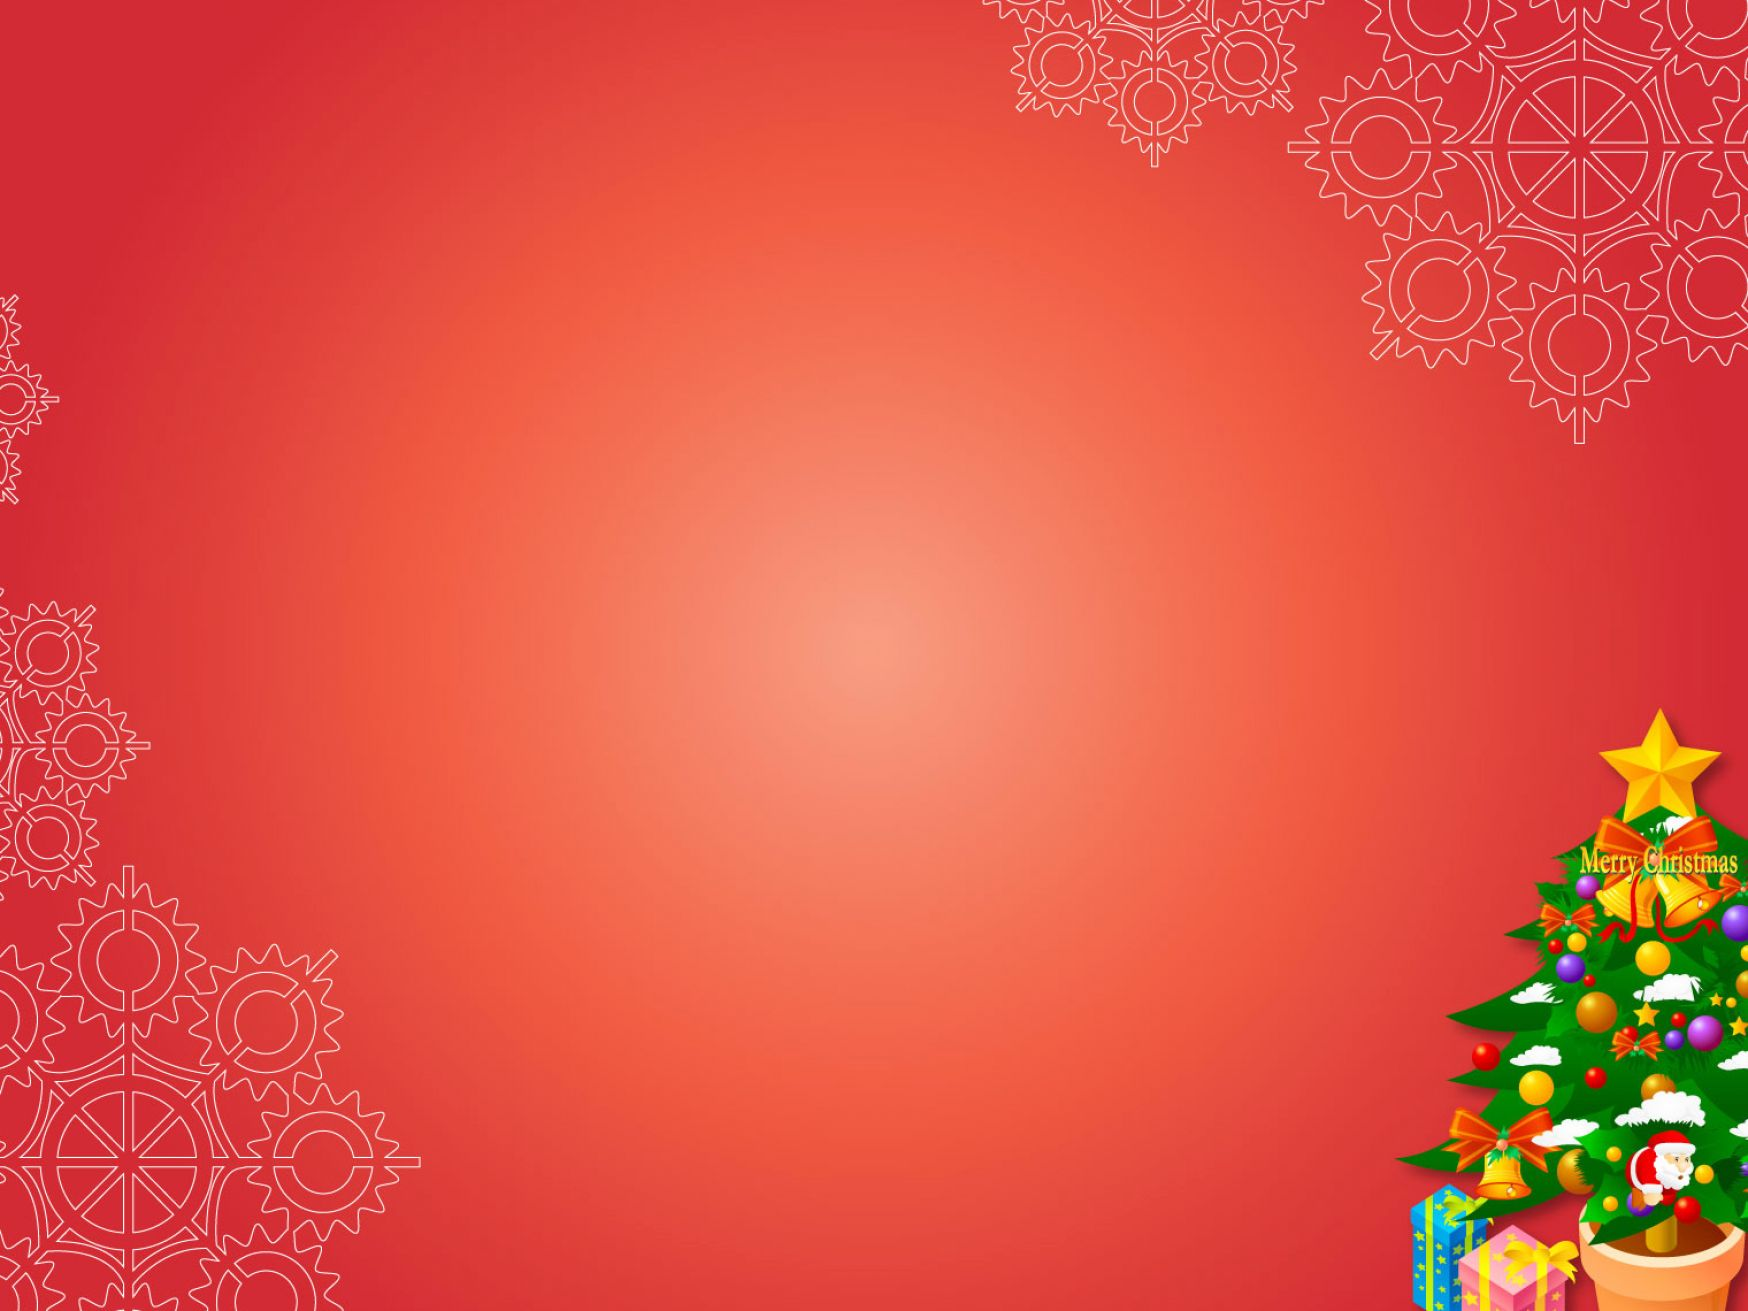 Christmas Powerpoint Background Templates Free Homealterdecortop PO0J6x9U